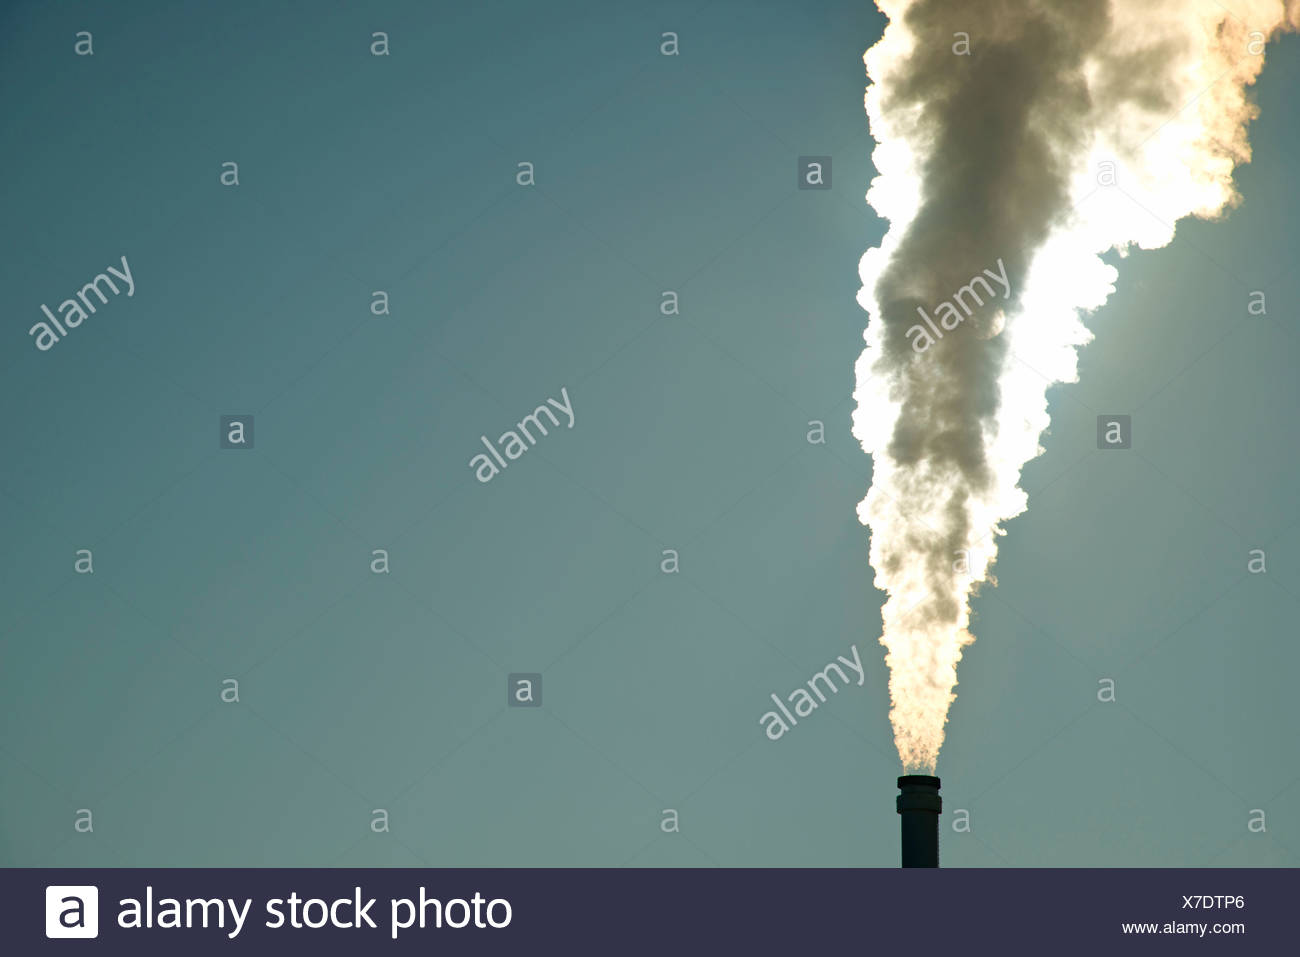 Waste gases outside FRG federal republic CO2 Germany issue emission energy energy source global warming Europe back light back - Stock Image